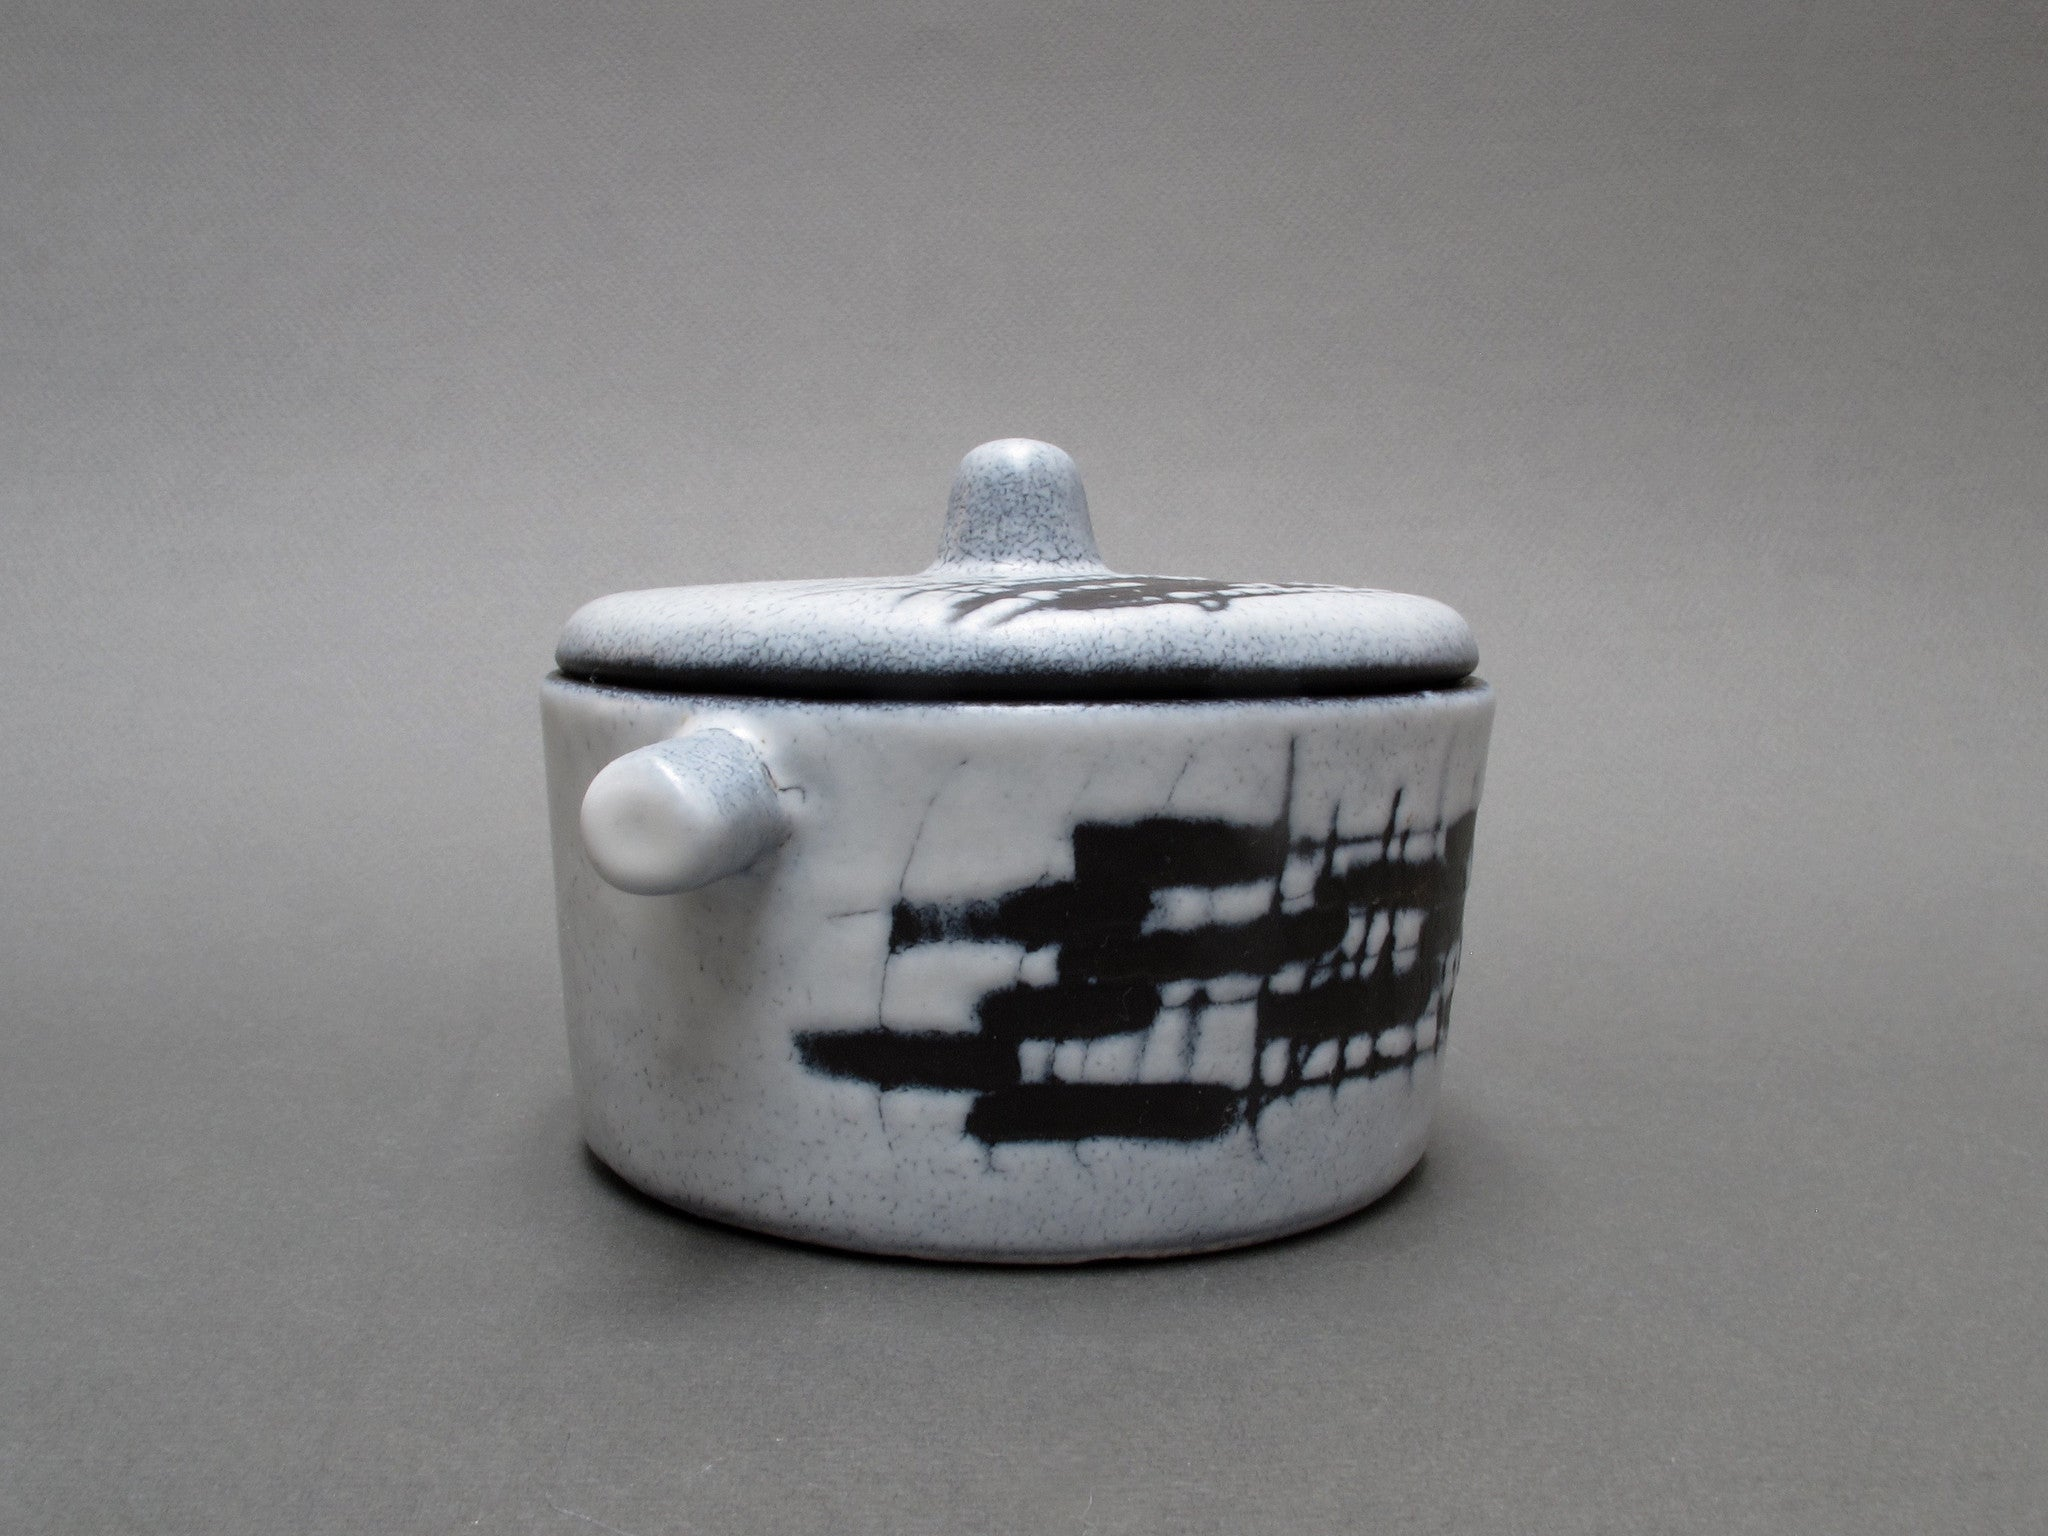 Ceramic Pot with Lid (Cocotte) by François Caleca (c. 1960s)